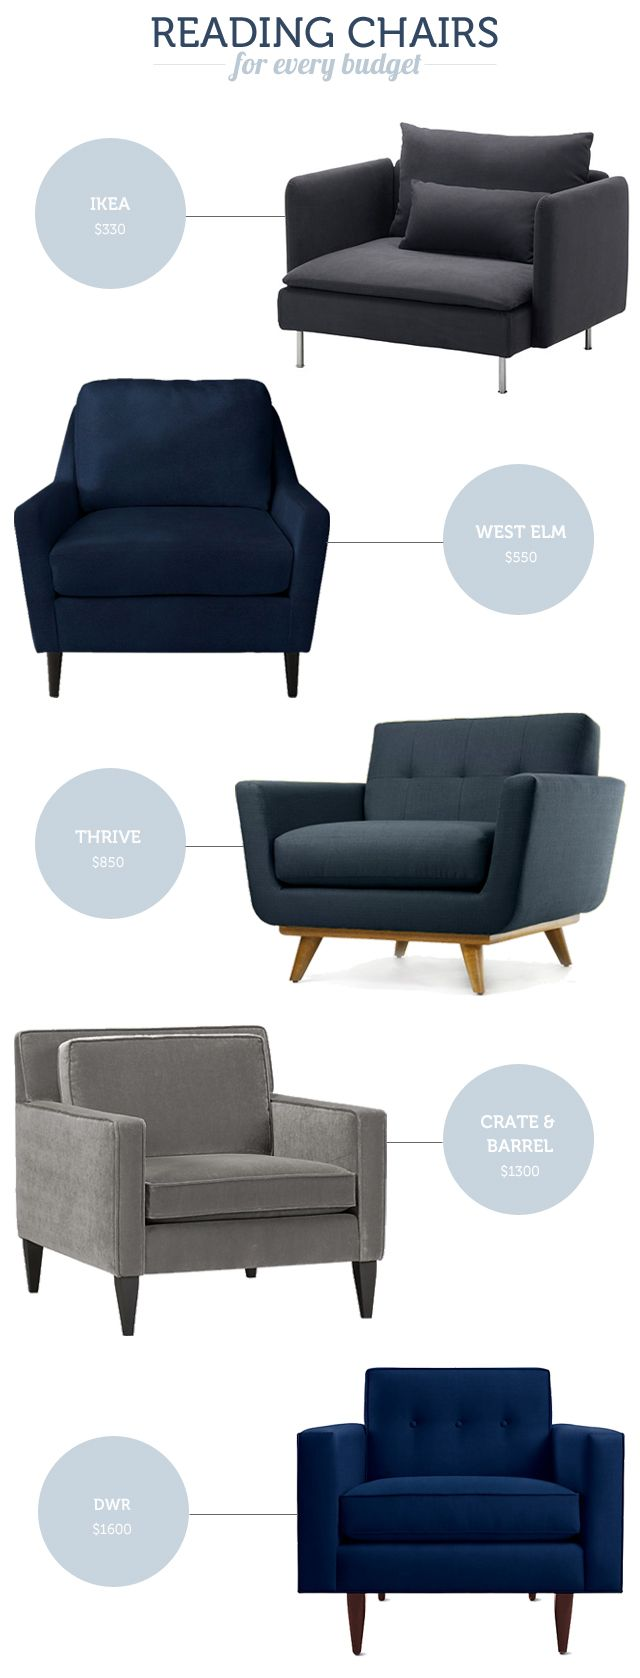 Best 25+ Comfy Reading Chair ideas on Pinterest | Comfy chair, Big ...